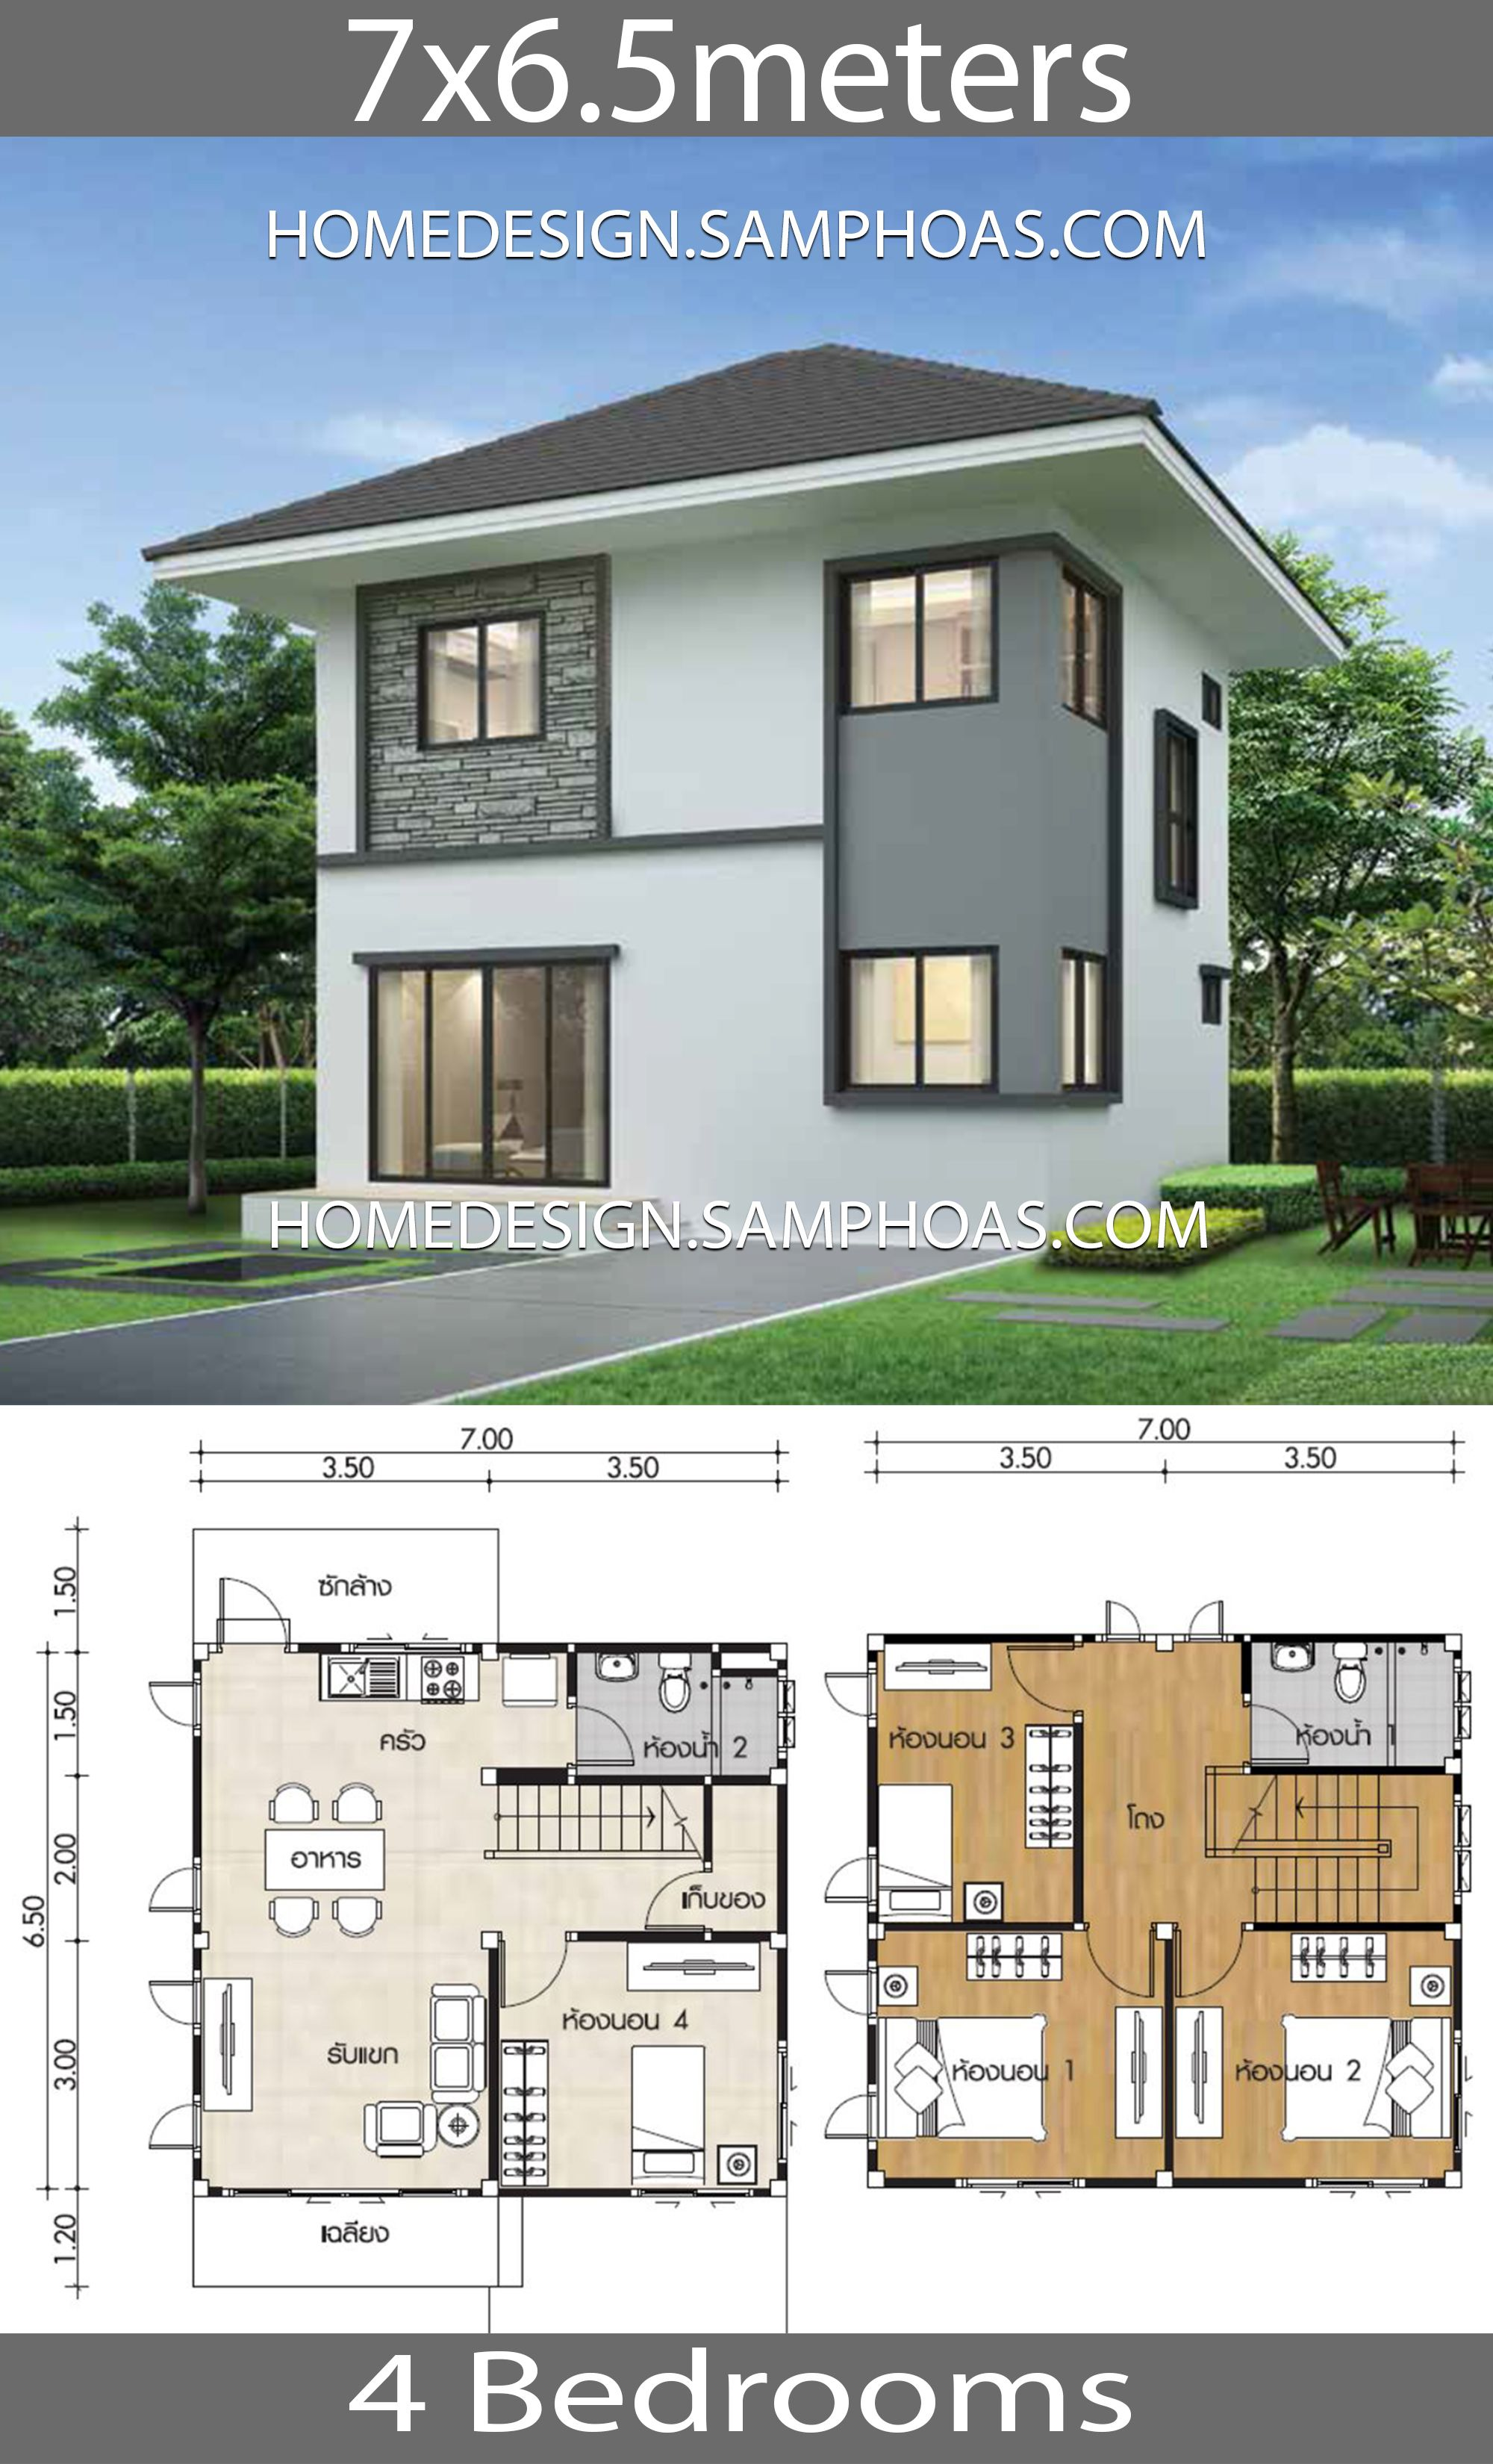 29+ 6 bedroom 2 story house plans 3d ideas in 2021